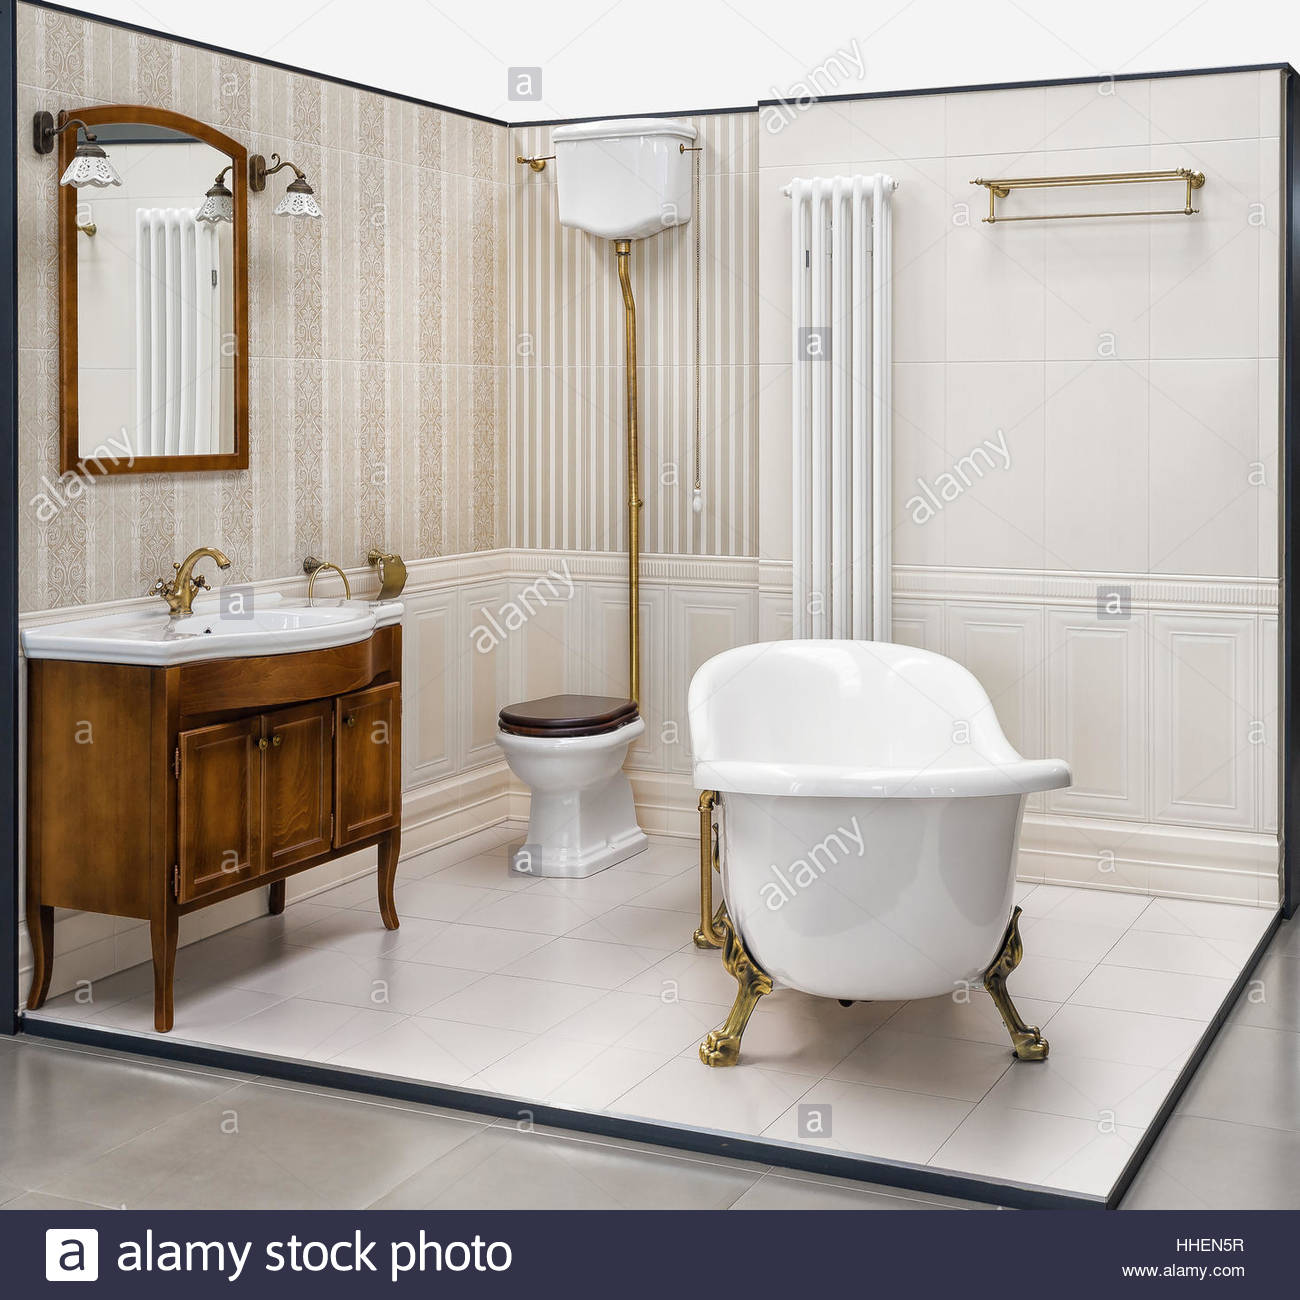 Retro Bathroom High Resolution Stock Photography And Images Alamy